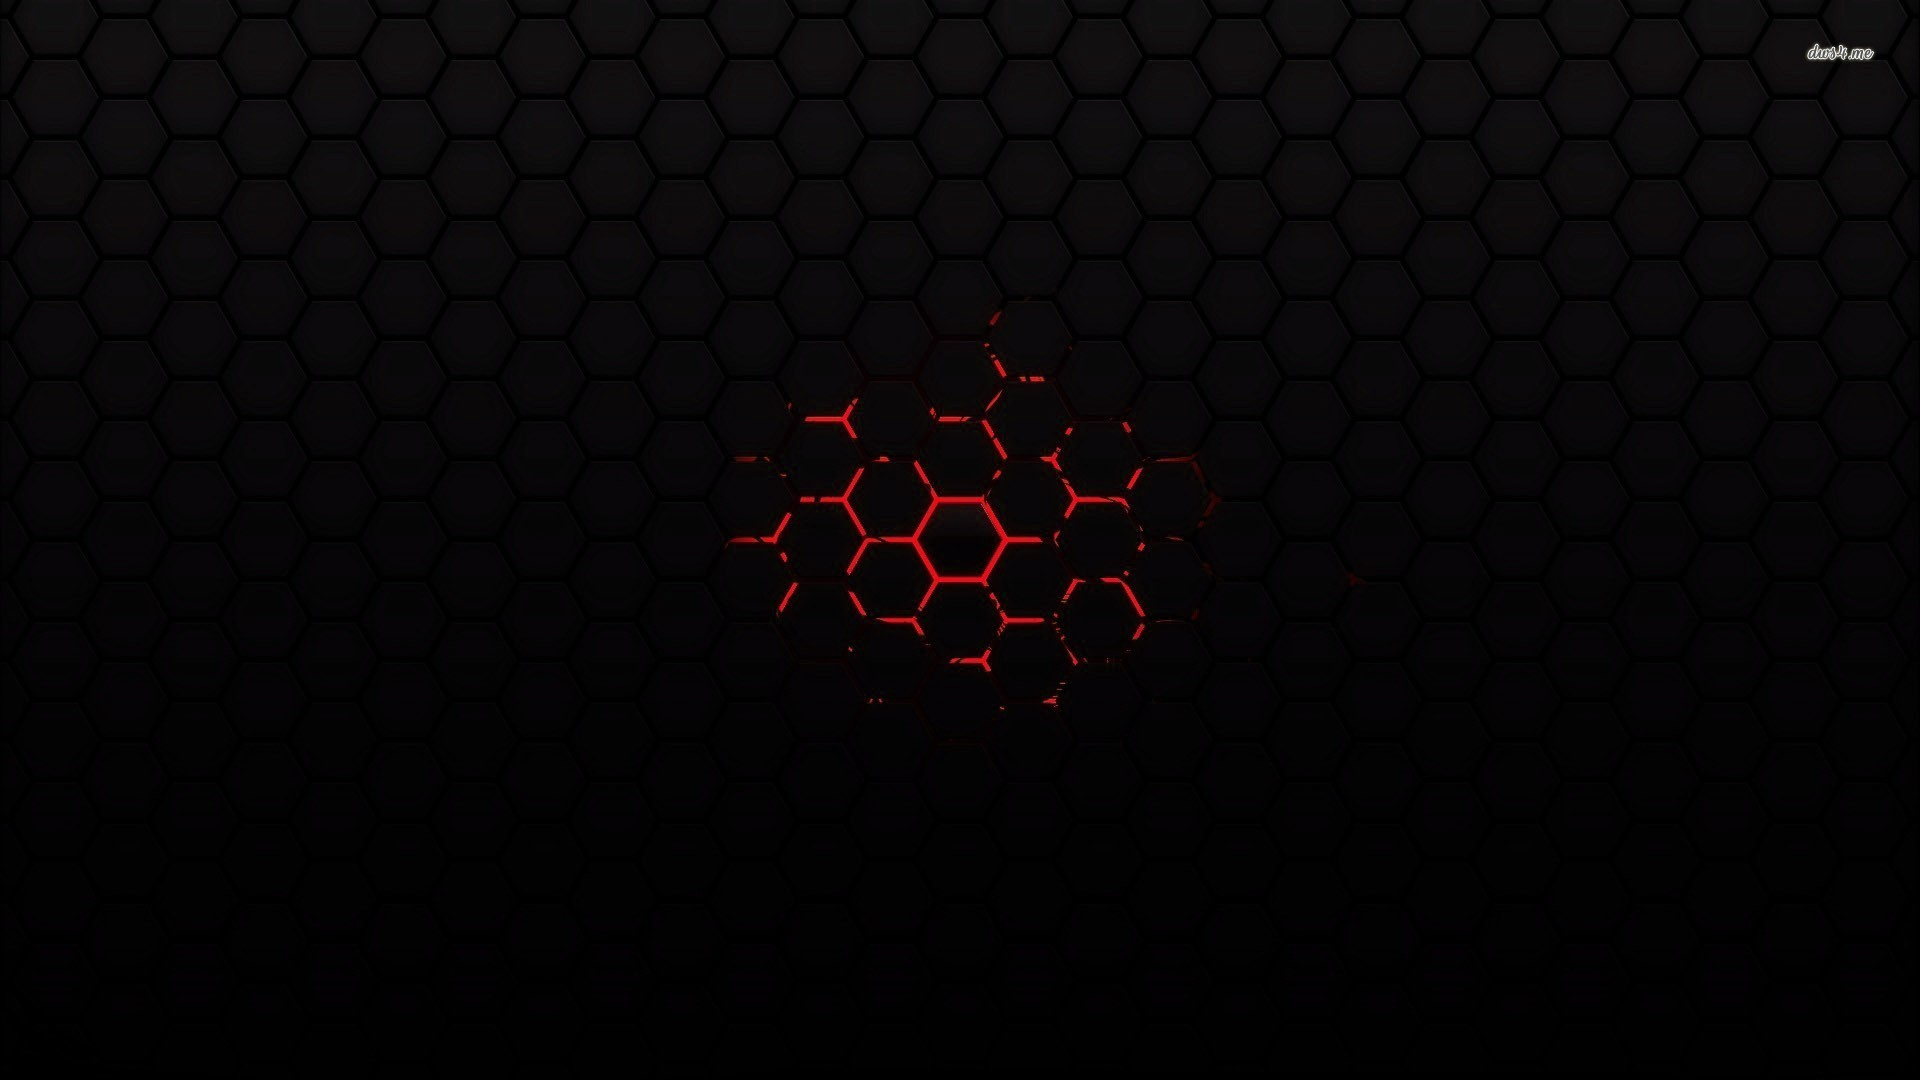 1920x1080 Red on black honeycomb pattern wallpaper 1280x800 Red on black .